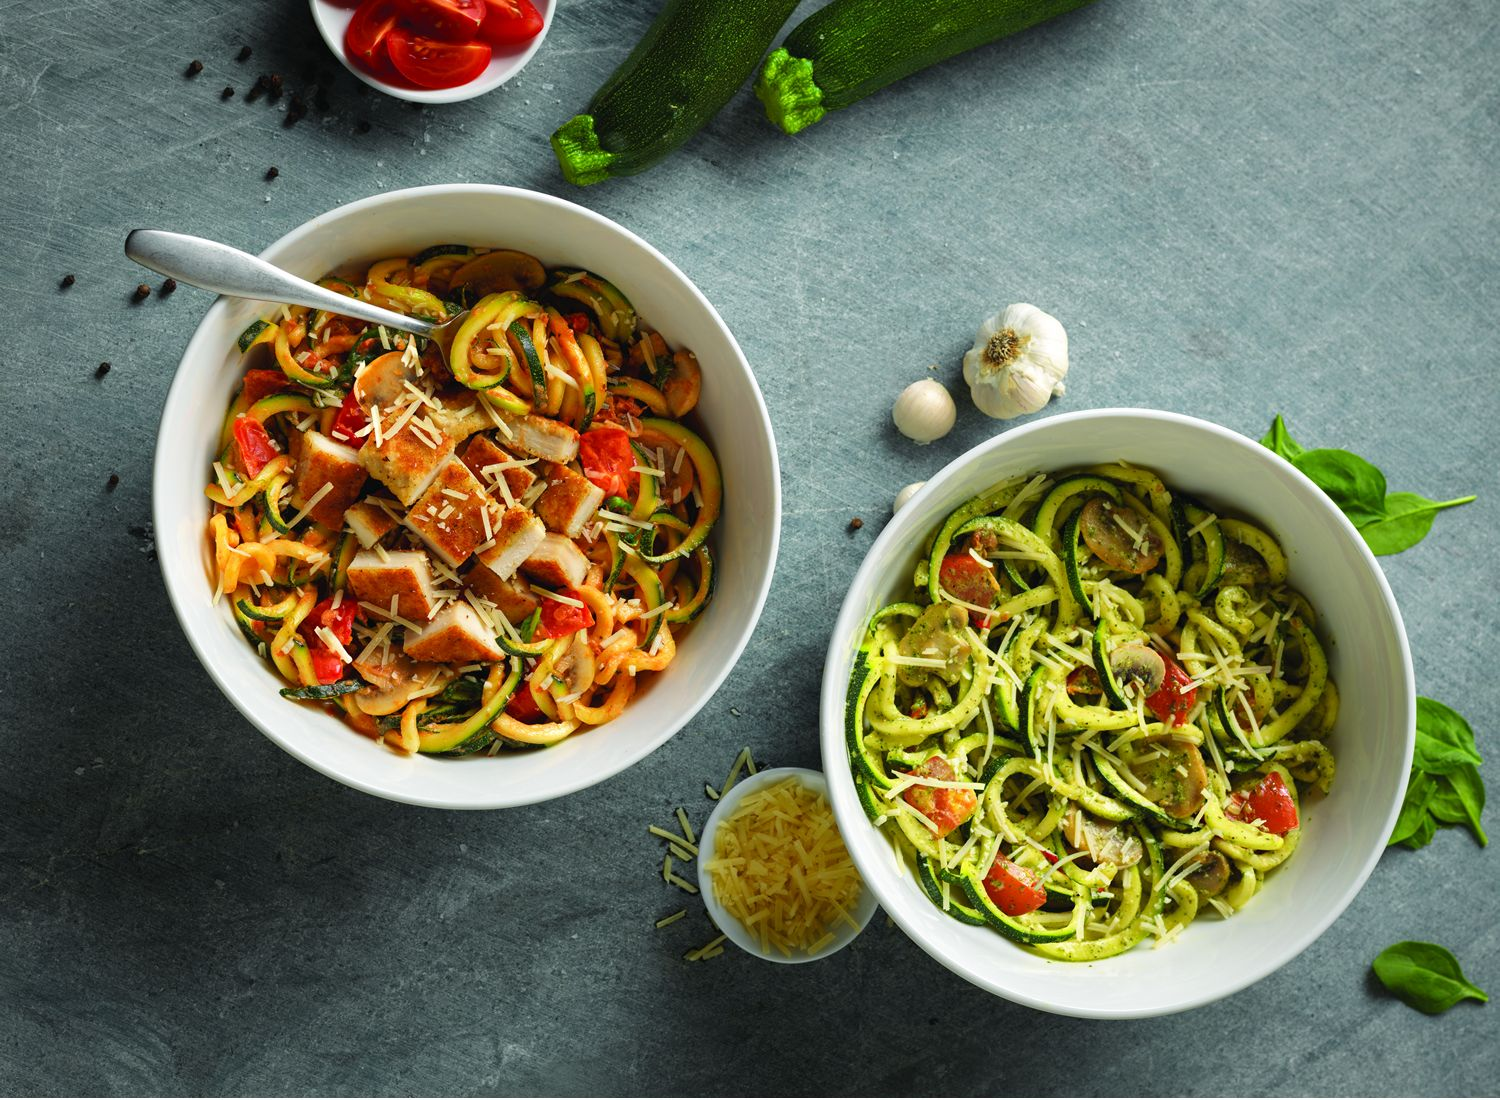 Noodles & Company Moves Vegetables to the Center of the Bowl With Debut of Veggie Noodles